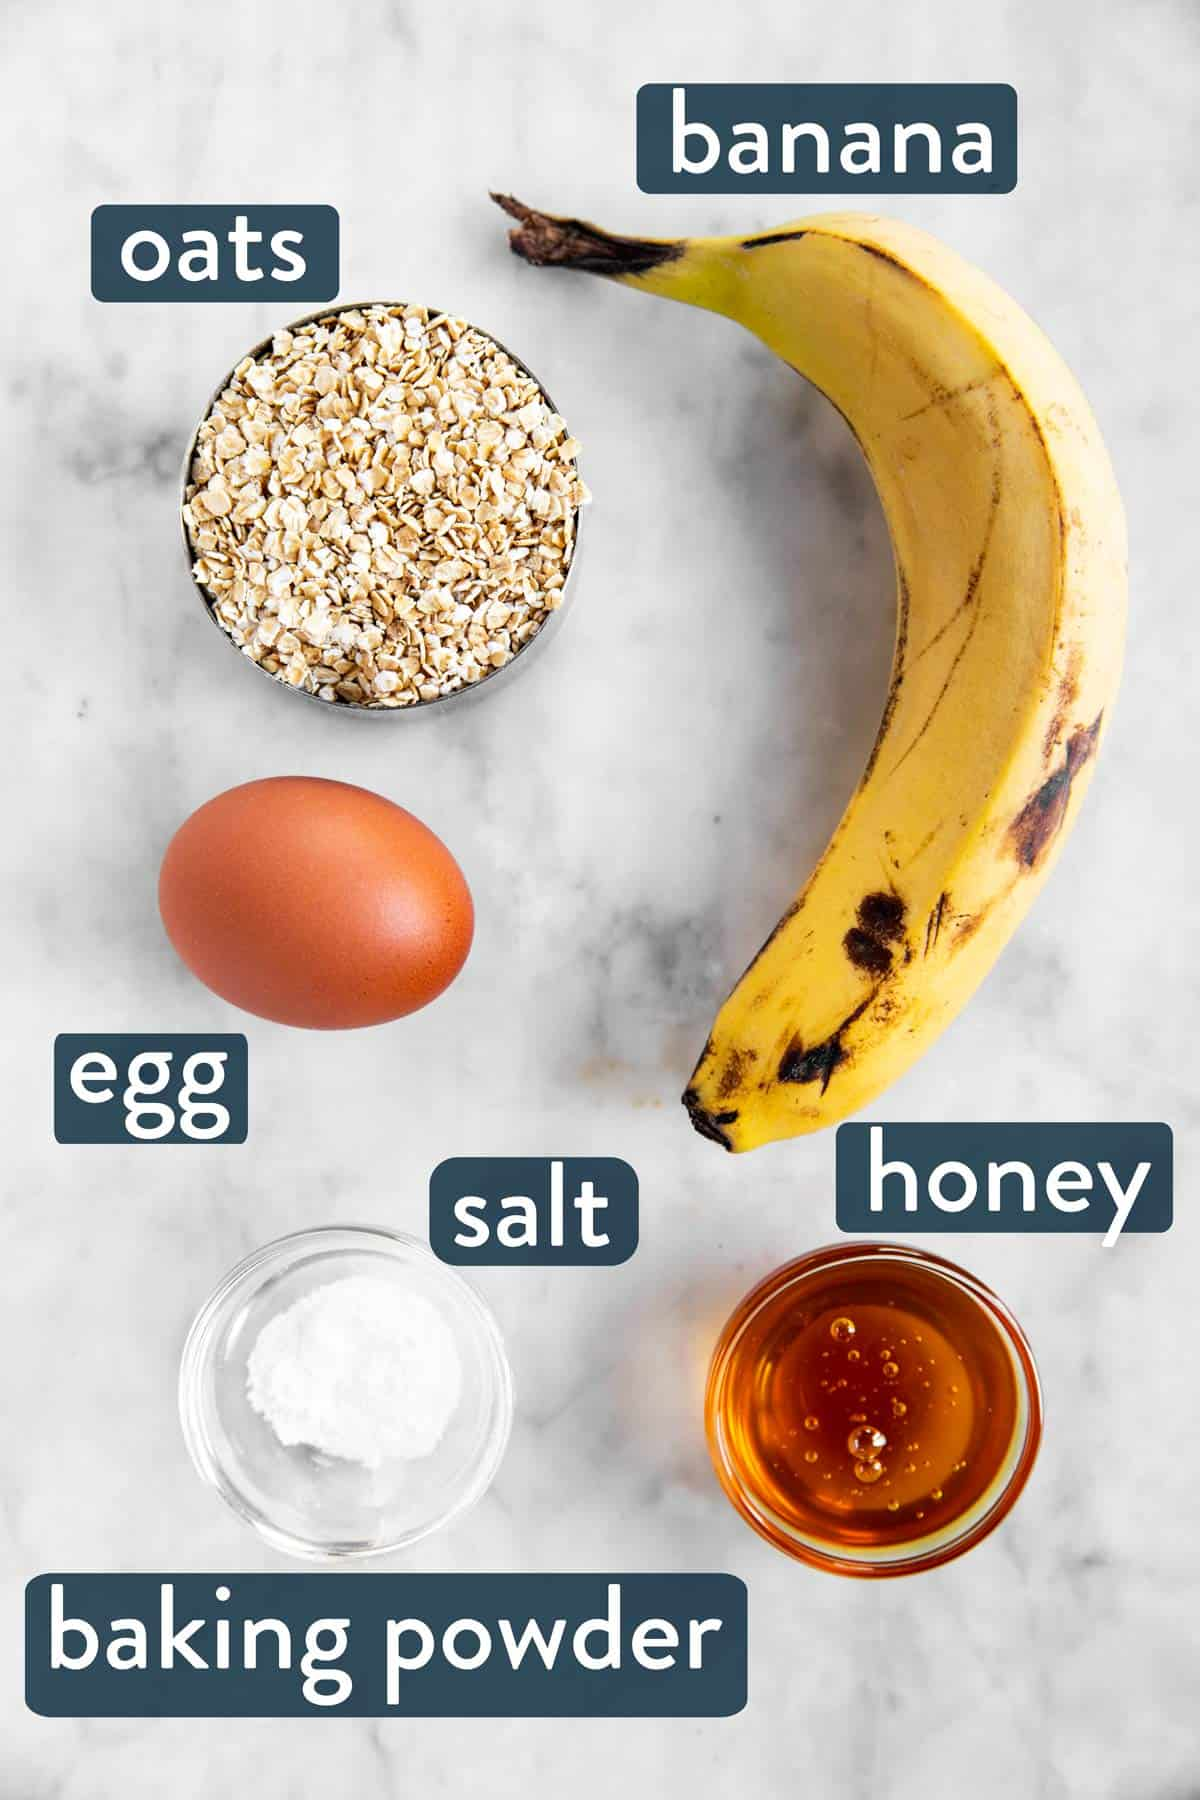 ingredients for baked oats with text labels